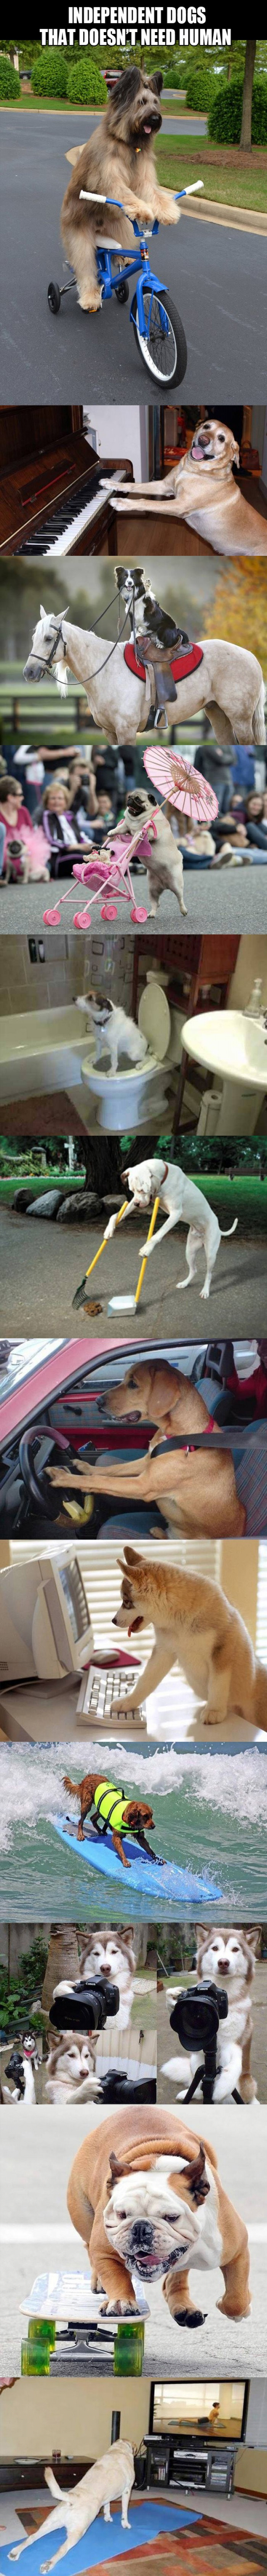 12 Independent Dogs That Doesn't Need Man